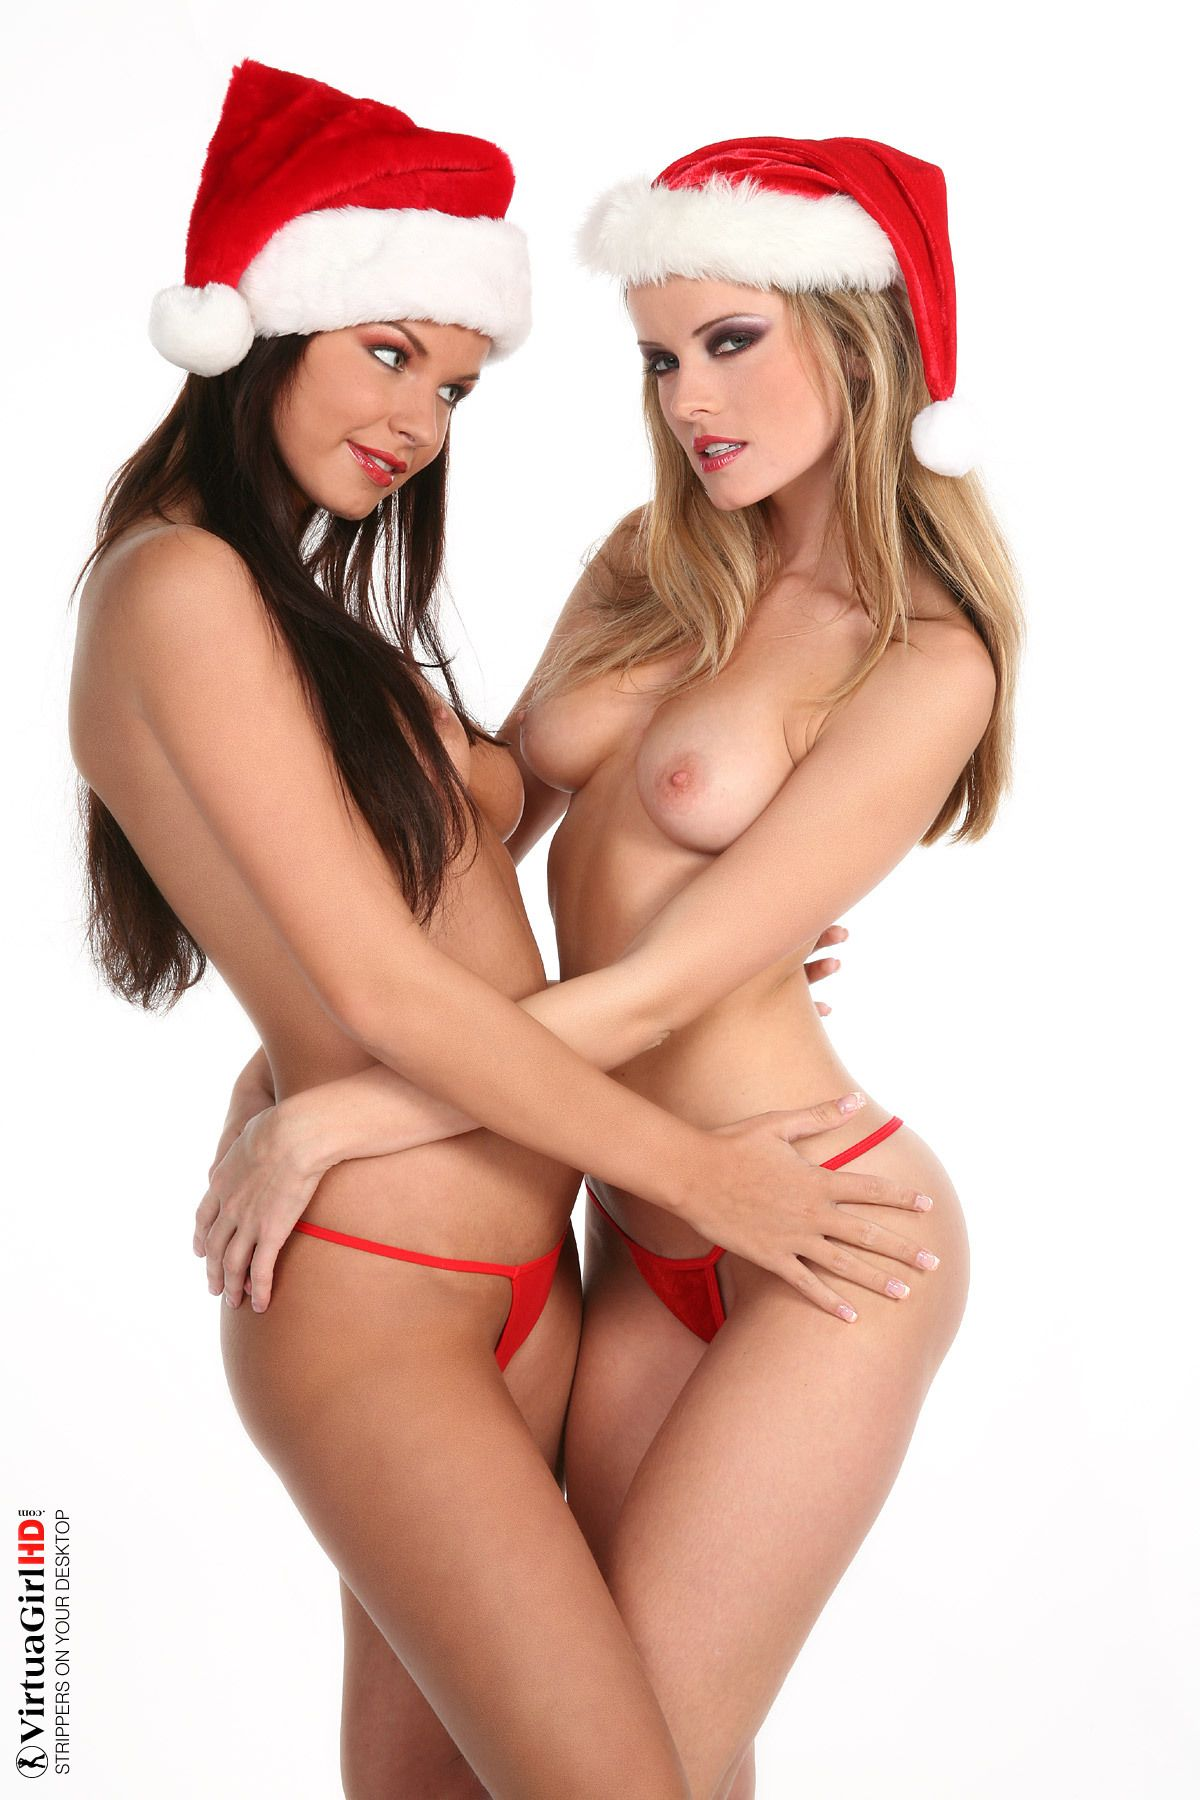 VirtuaGirl - Nikky Case & Mina - CHRISTMAS JEWELS 03